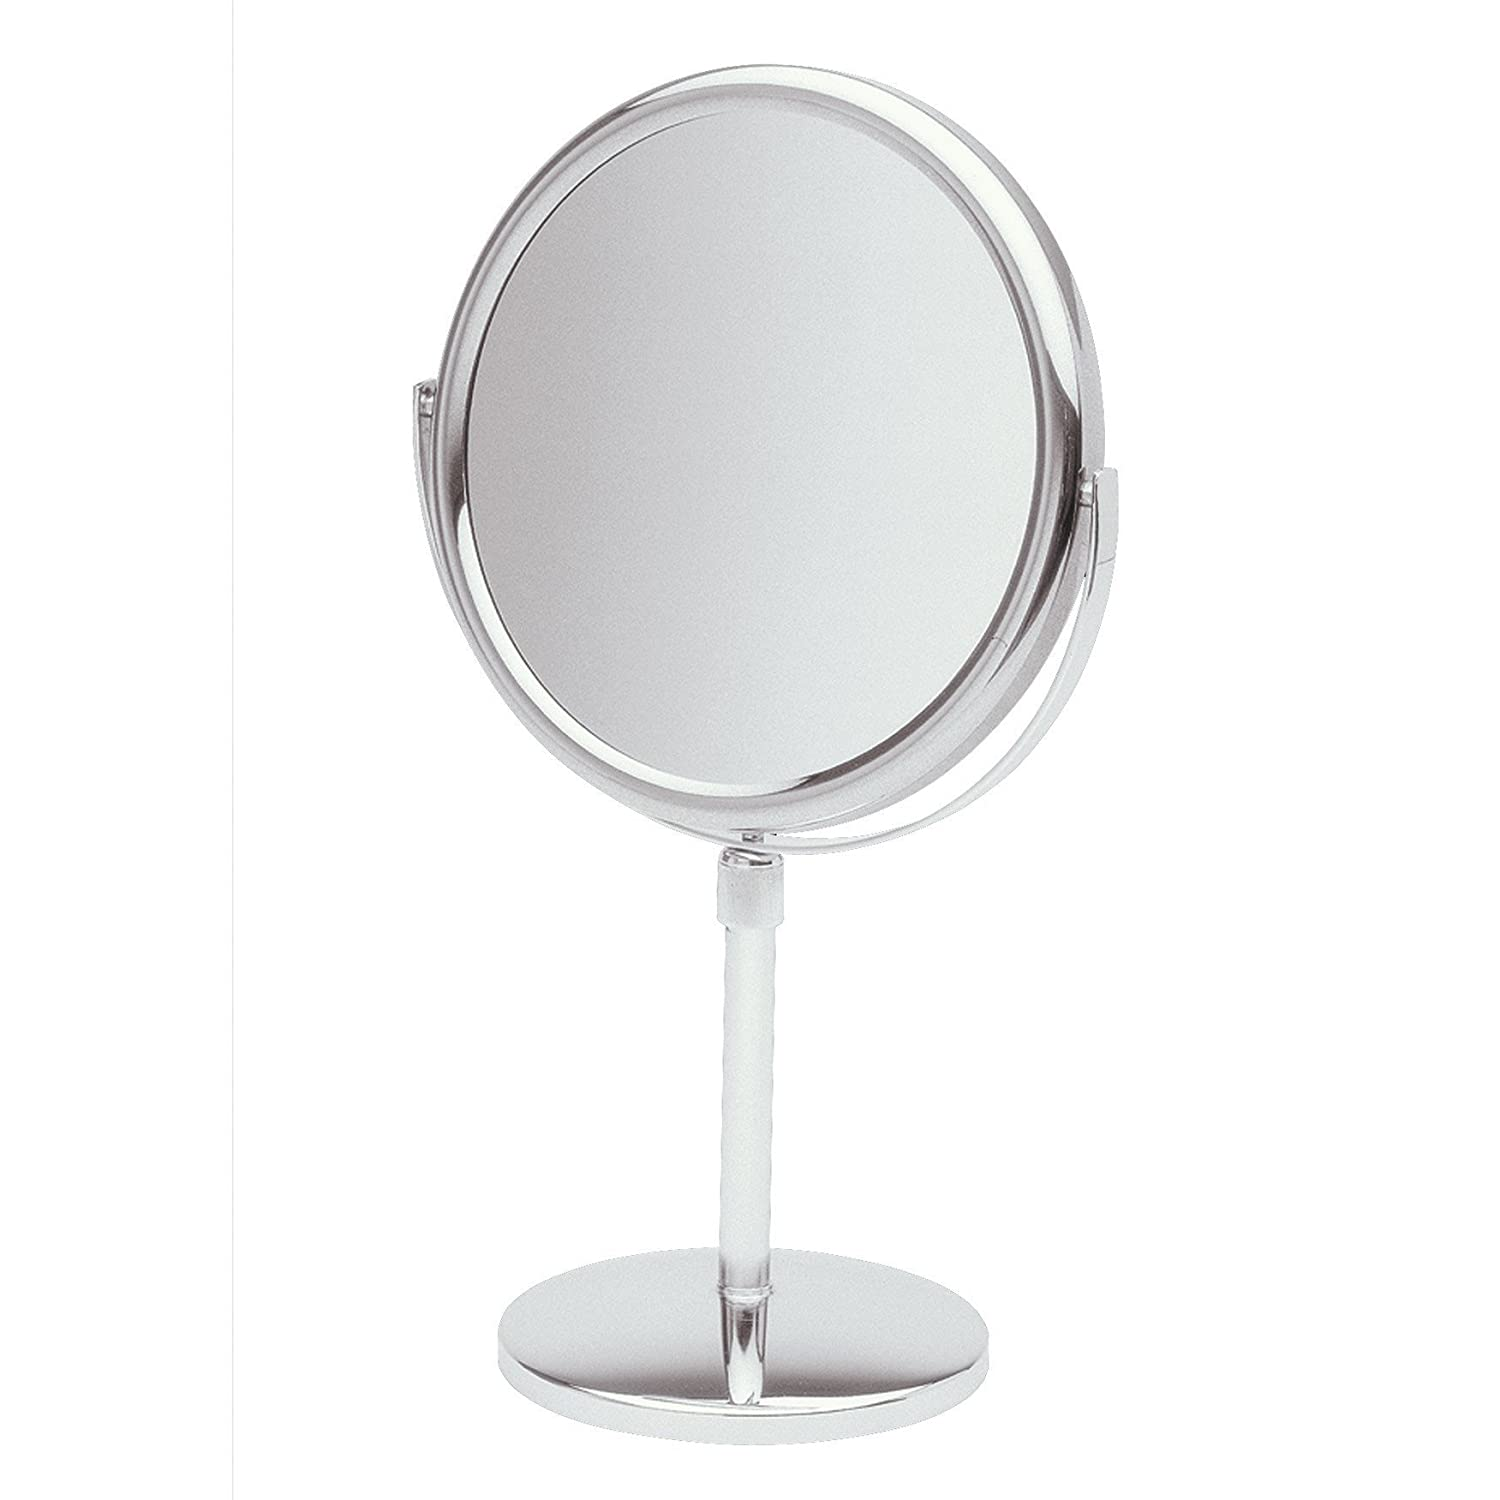 Jerdon JP4045C 9-Inch Tabletop Two-Sided Swivel Vanity Mirror with 5x Magnification, 16.5-Inch to 21.5-Inch Adjustable Height, Chrome Finish